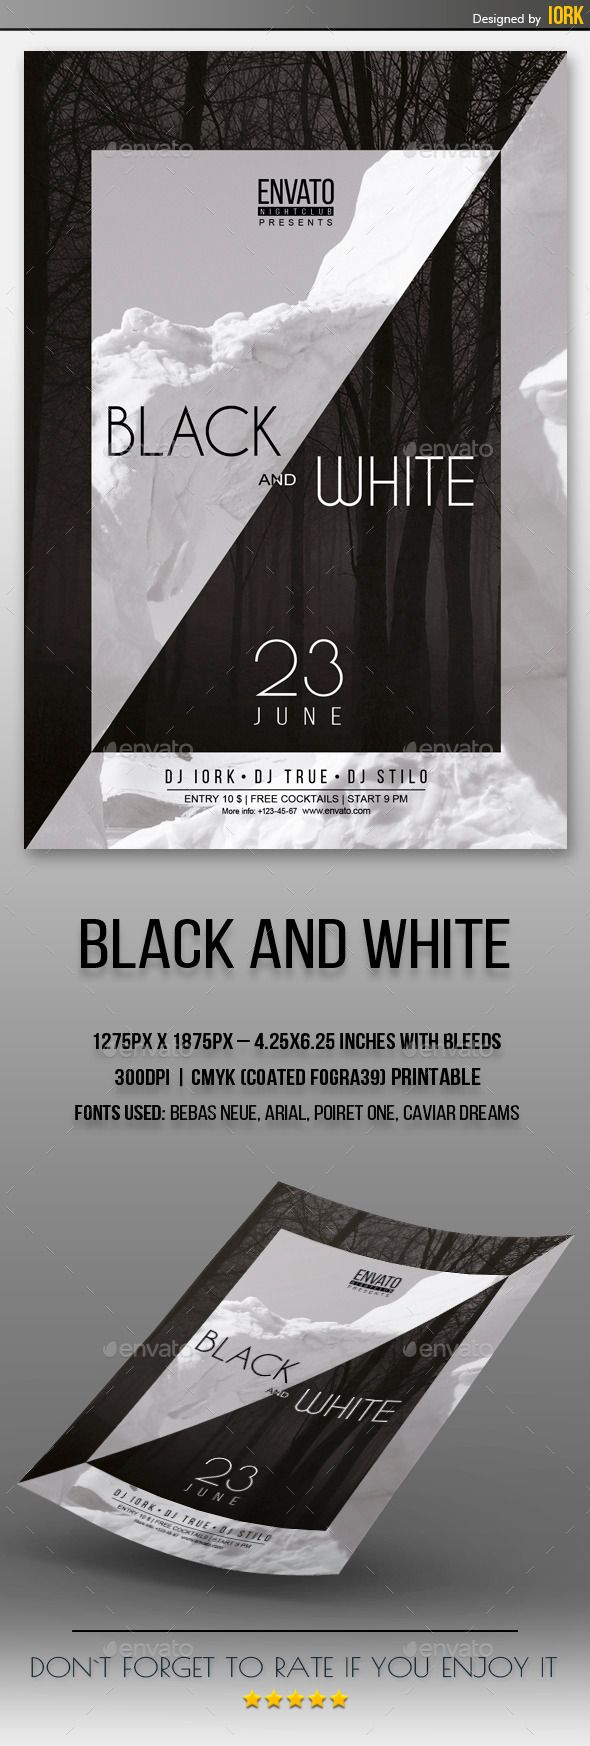 print black and white flyers nede whyanything co